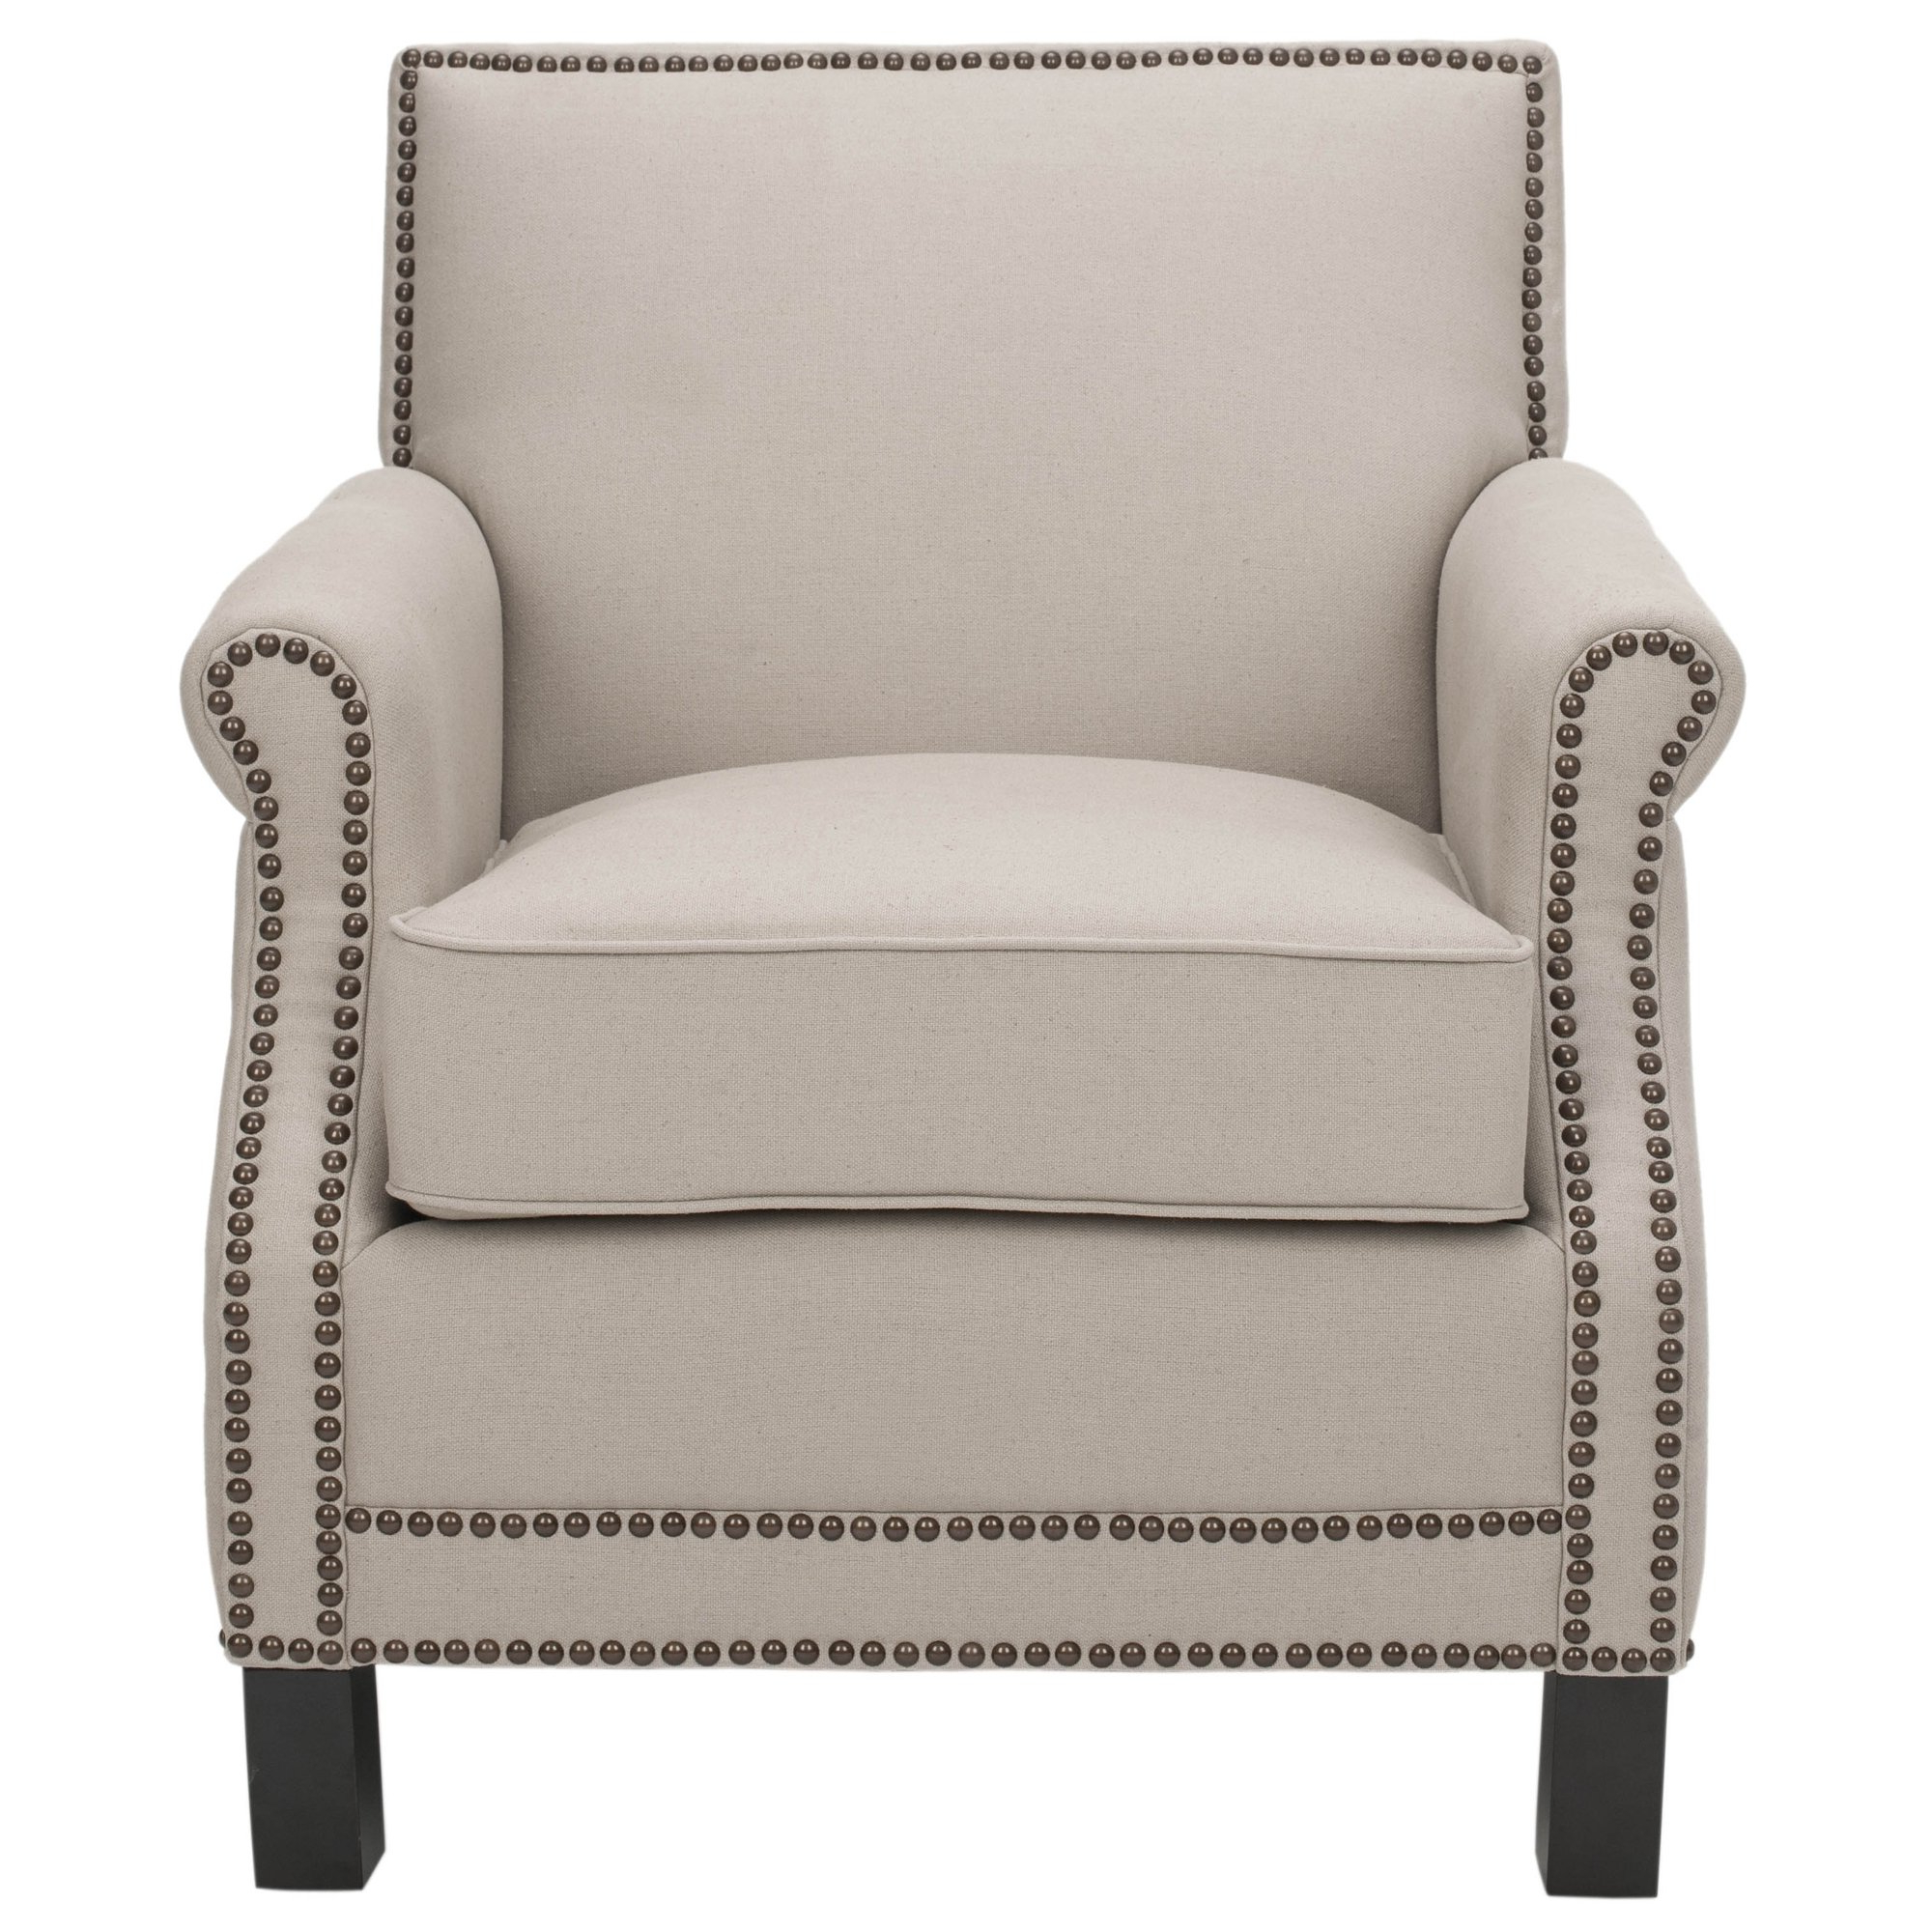 Mansfield Beige Linen Sofa Chairs Regarding 2018 Shop Safavieh Mansfield Beige Club Chair – Free Shipping Today (View 14 of 20)